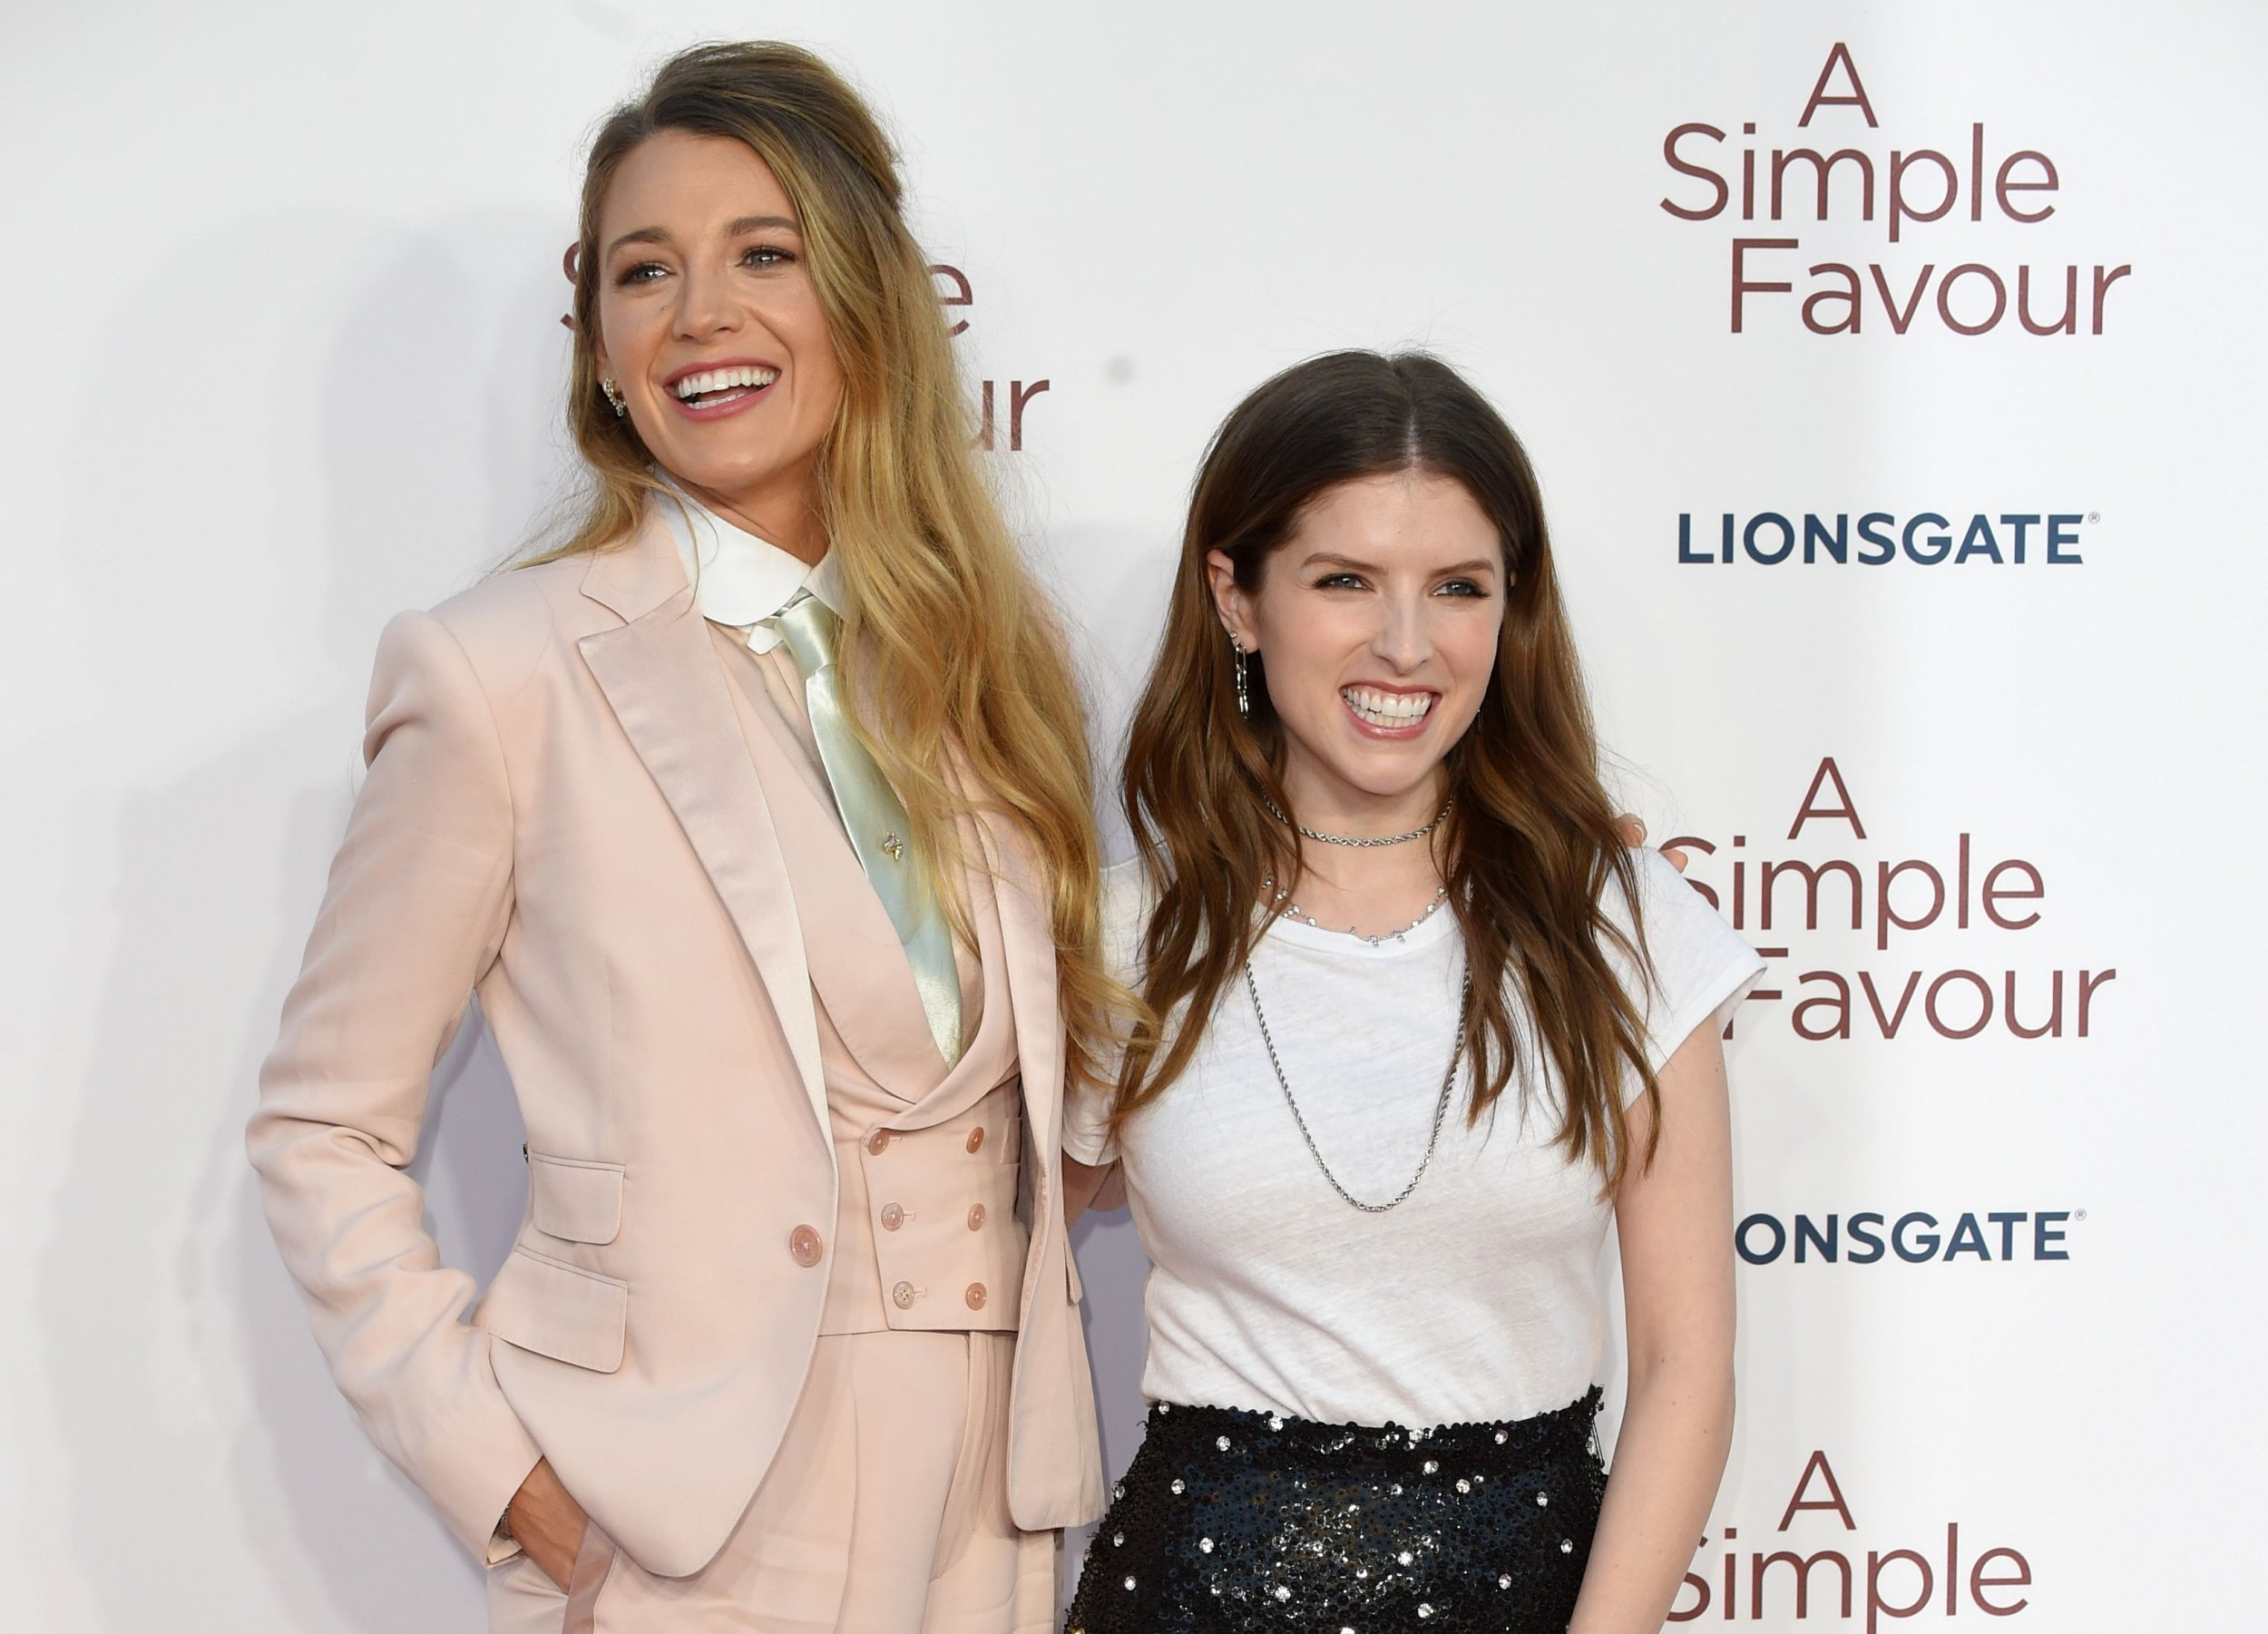 A Simple Favor - Anna Kendrick & Blake Lively as BFFs on Elle Ay Esse Best of 2018